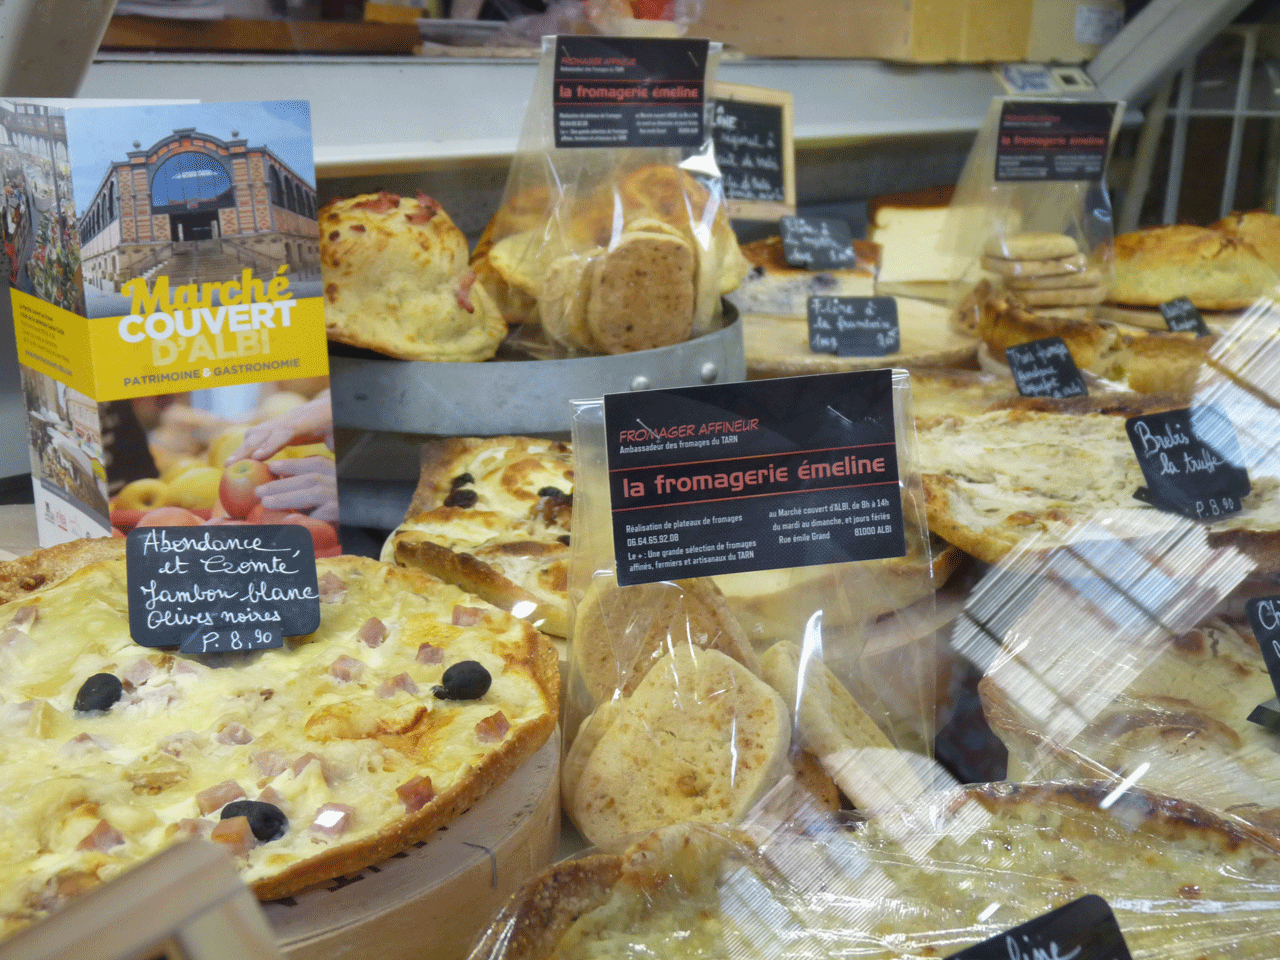 Albi Fromagerie Emeline marché couvert